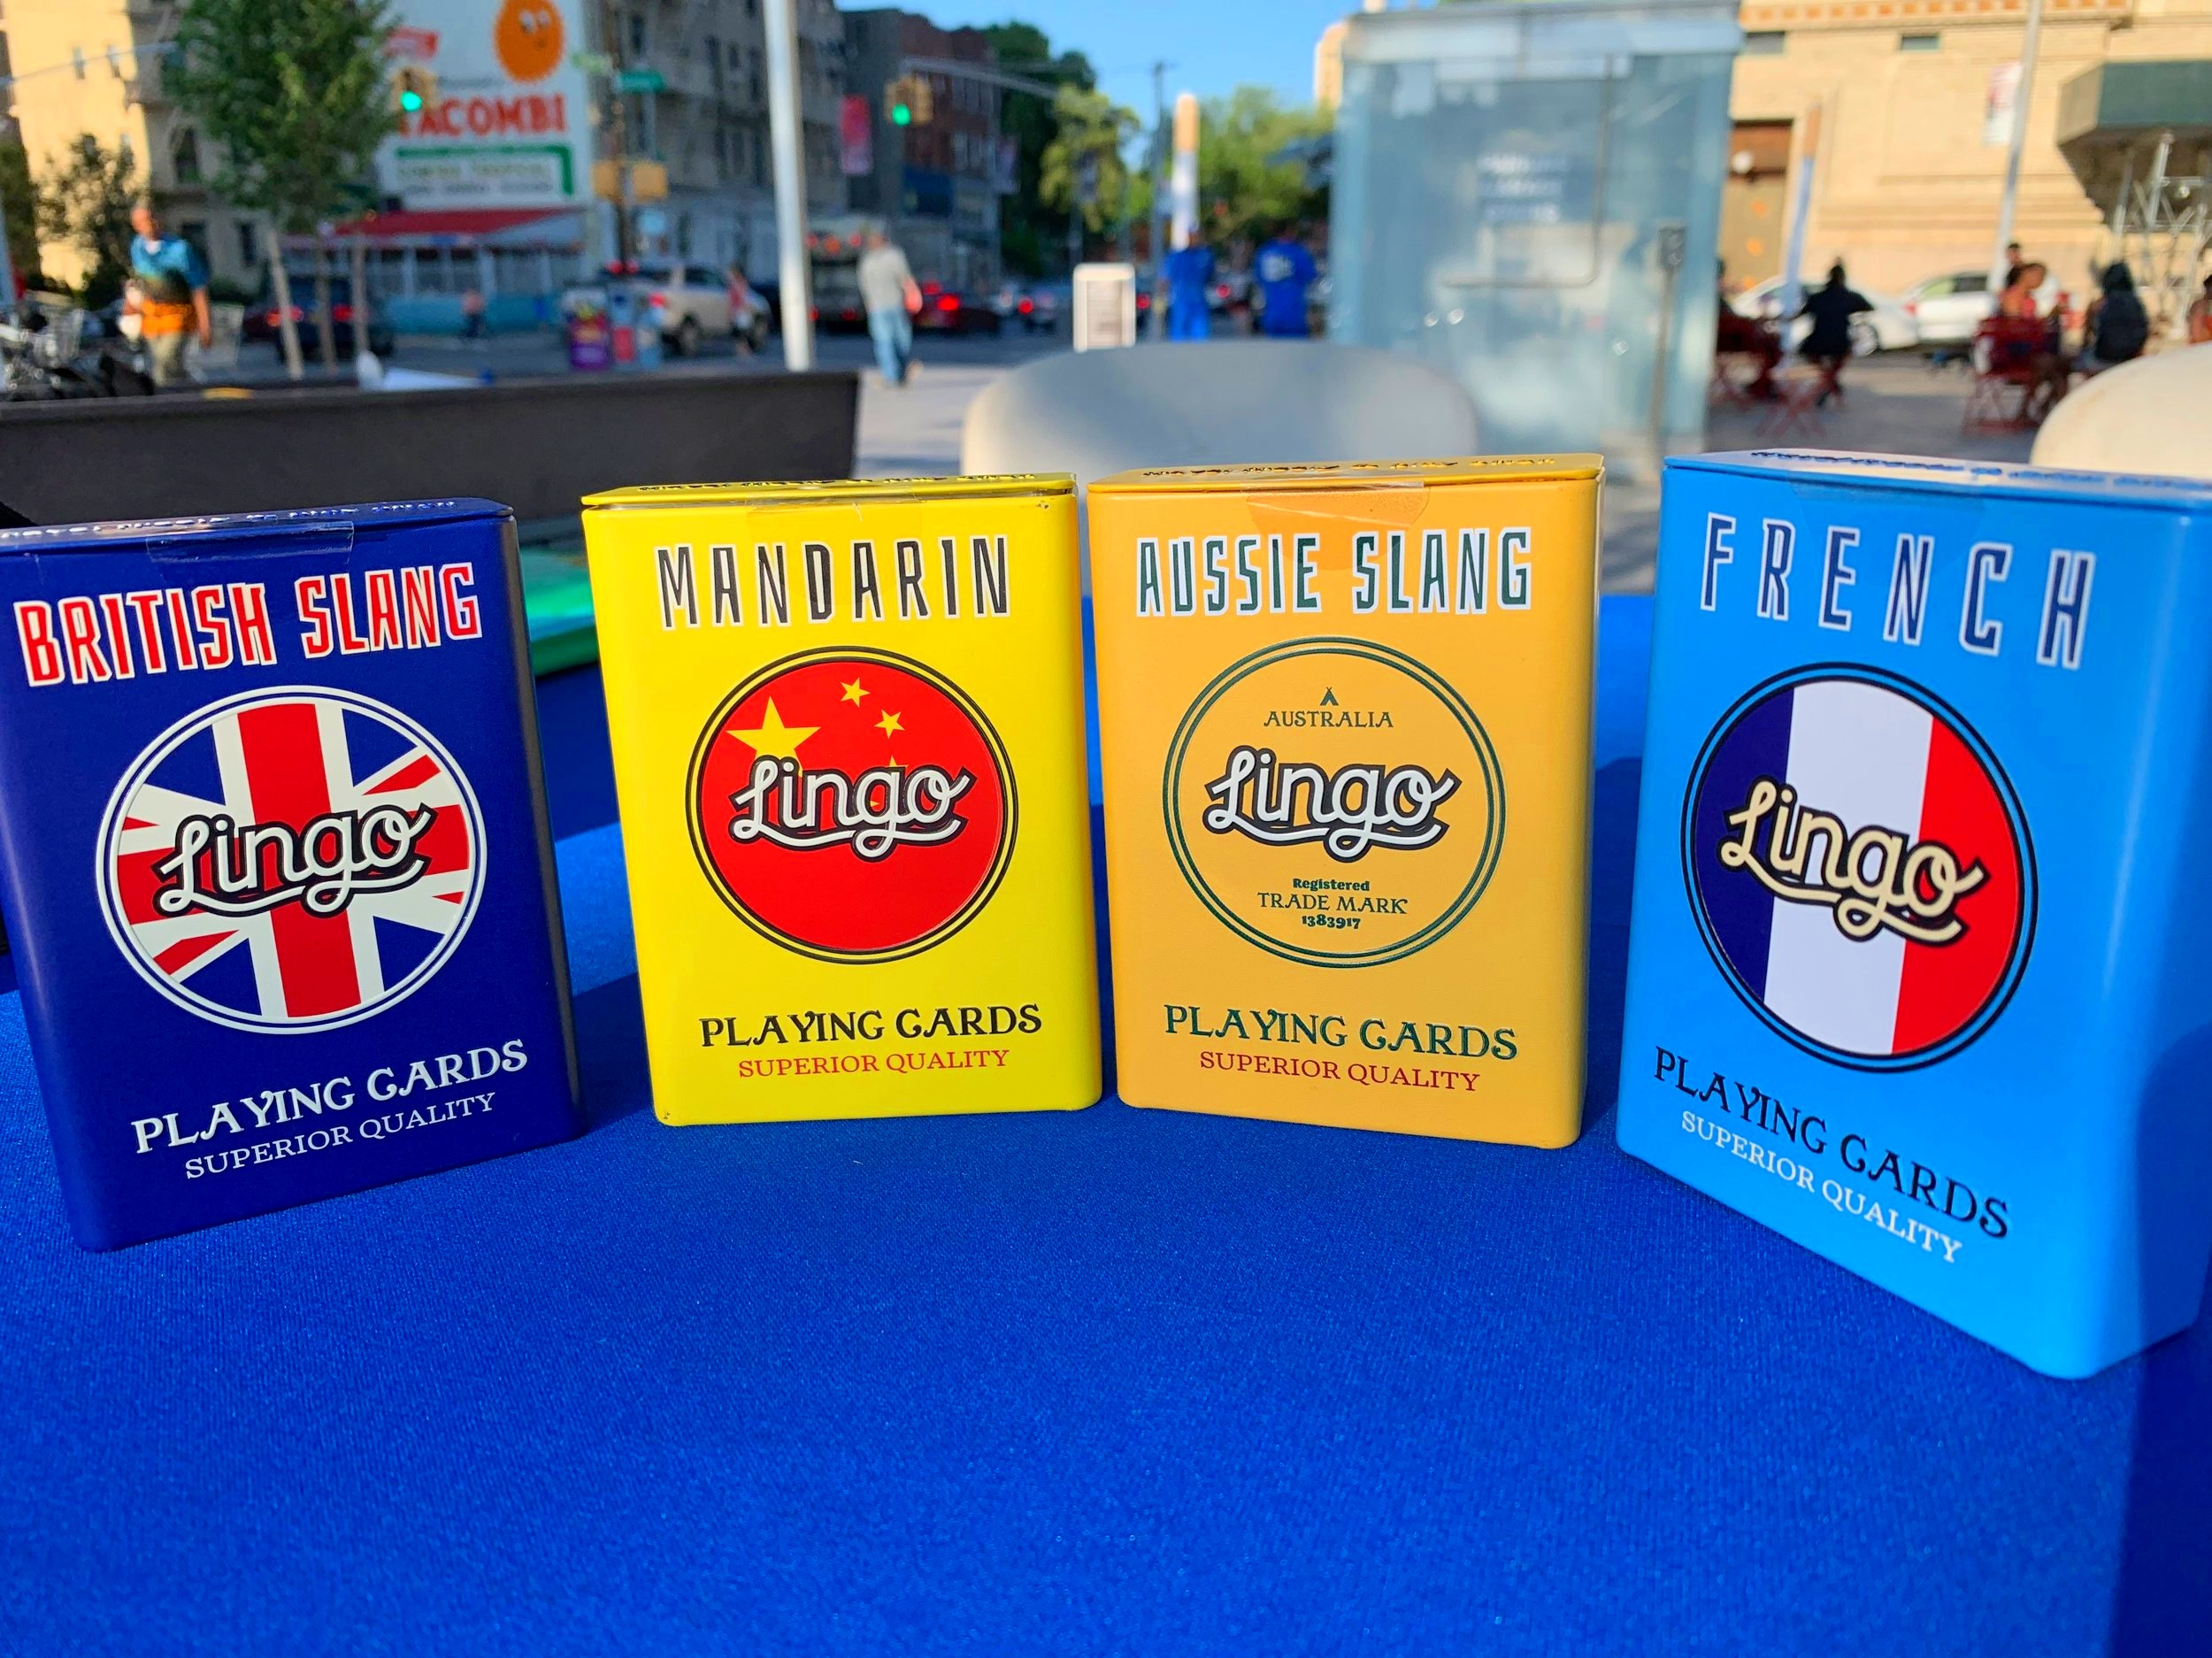 Each Lingo deck comes with 54 custom playing cards, available in Spanish, French, Italian, German, Japanese, Mandarin, Maori, Indonesian, British Slang, Aussie Slang and Kiwi Slang.